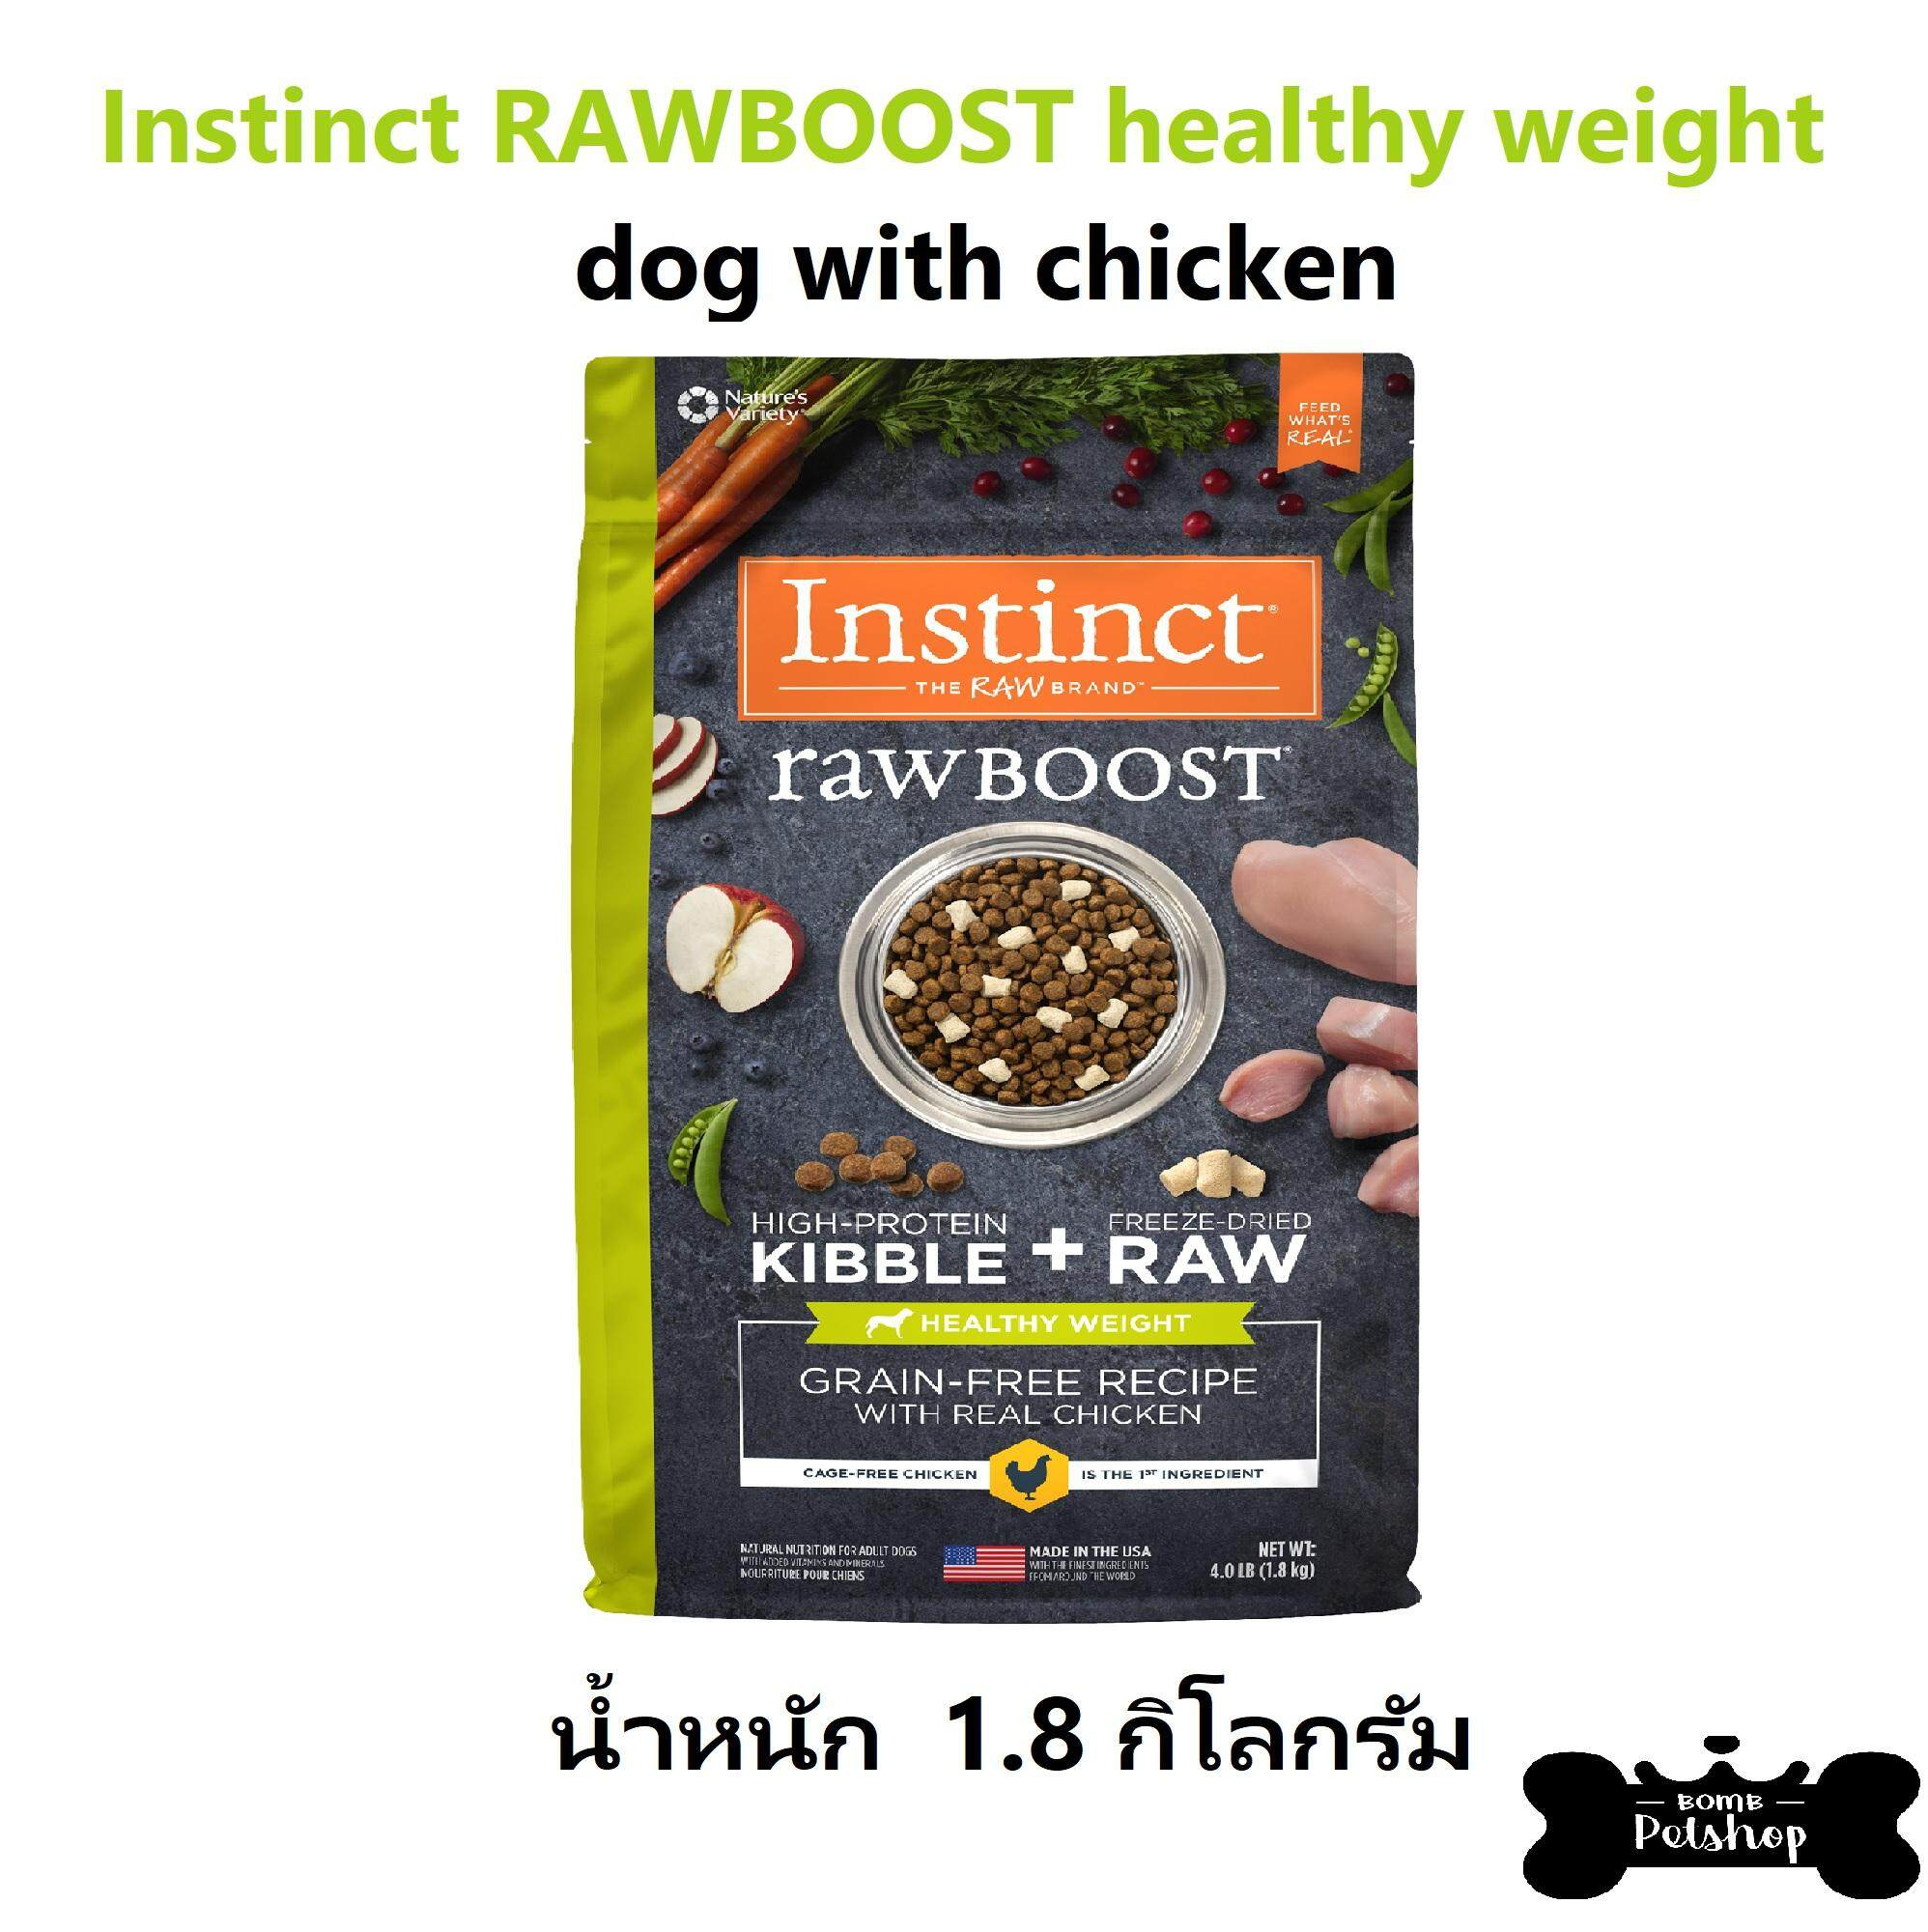 Instinct Rawboost Healthy Weight Dog With Chicken 1.8kg.